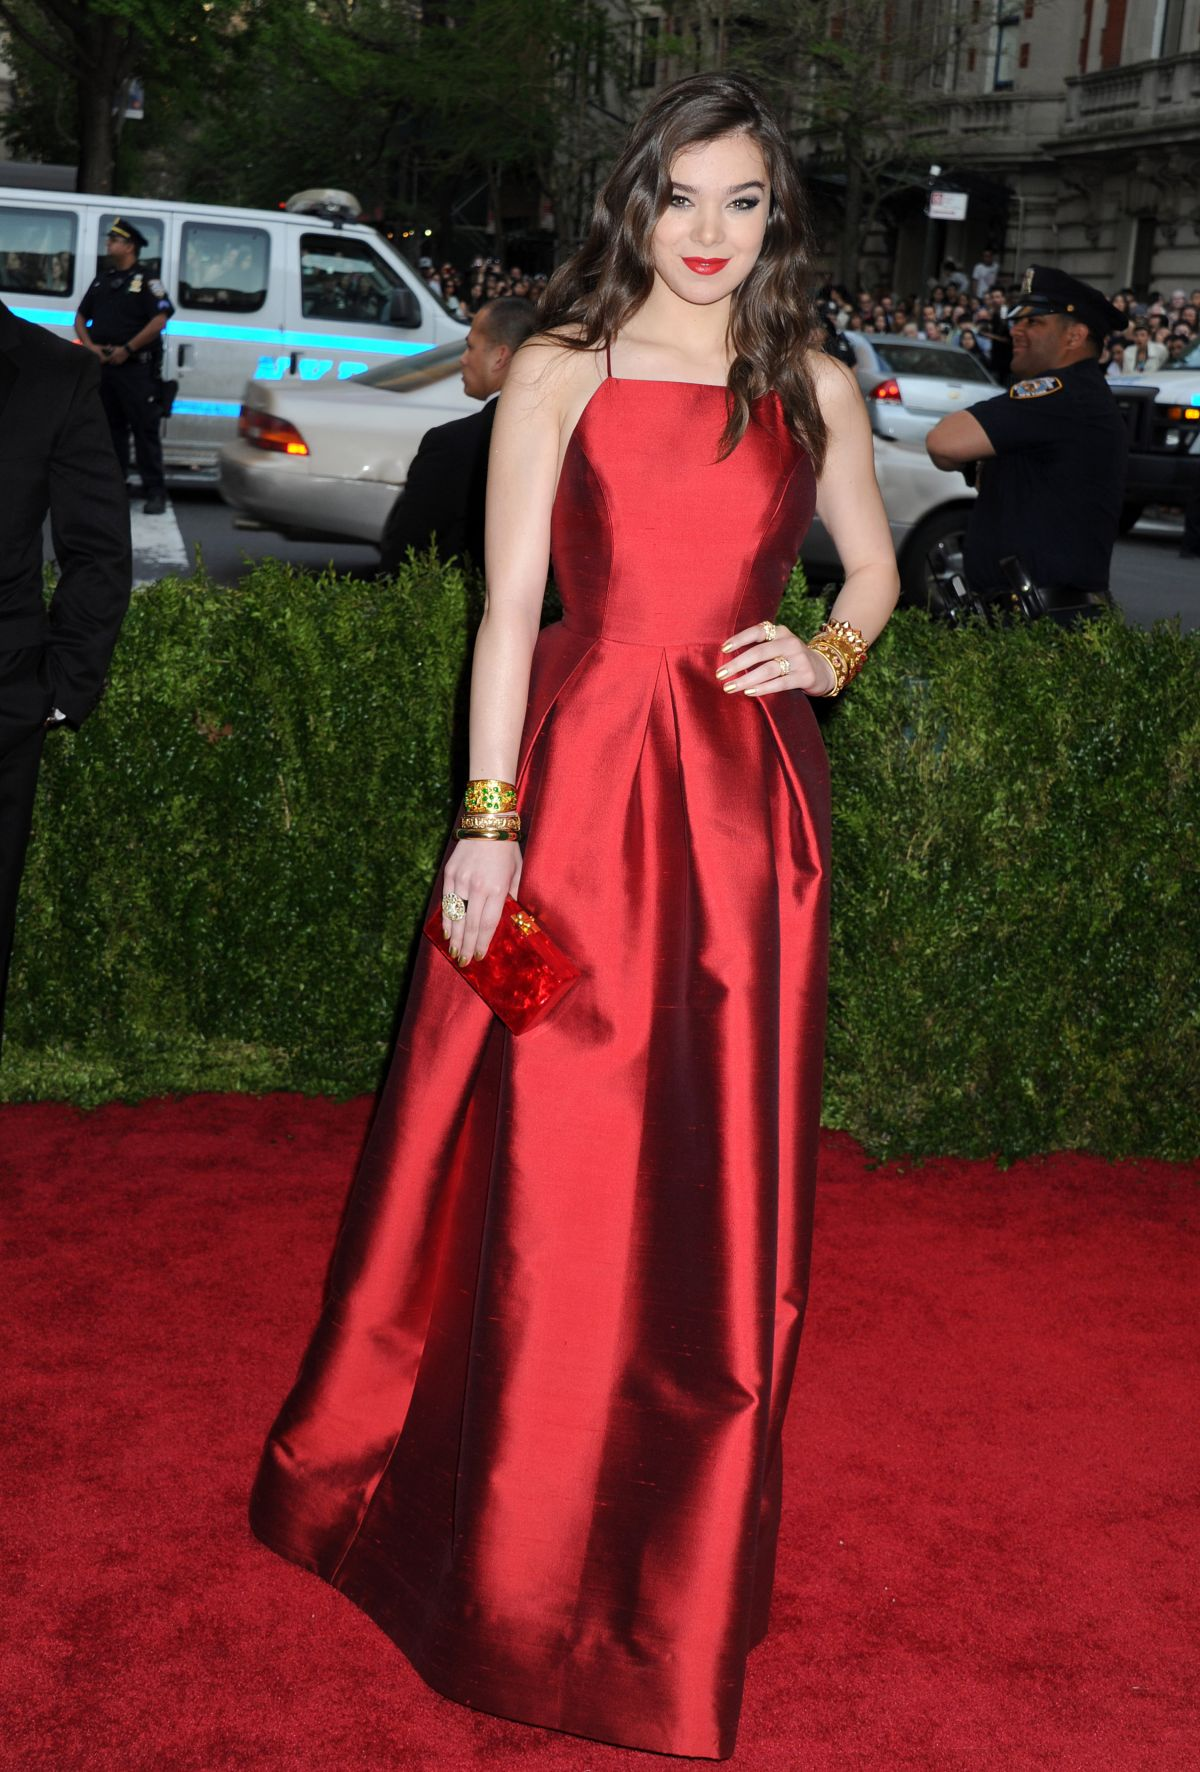 HAILEE STEINFELD at MET Gala 2015 in New York